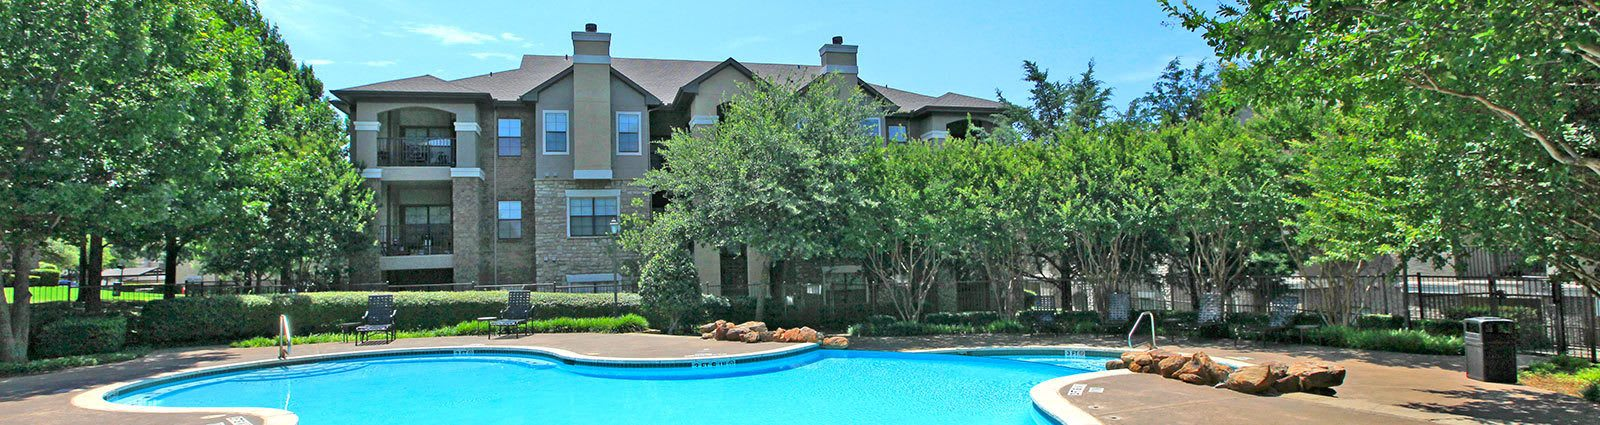 Garland Texas apartments